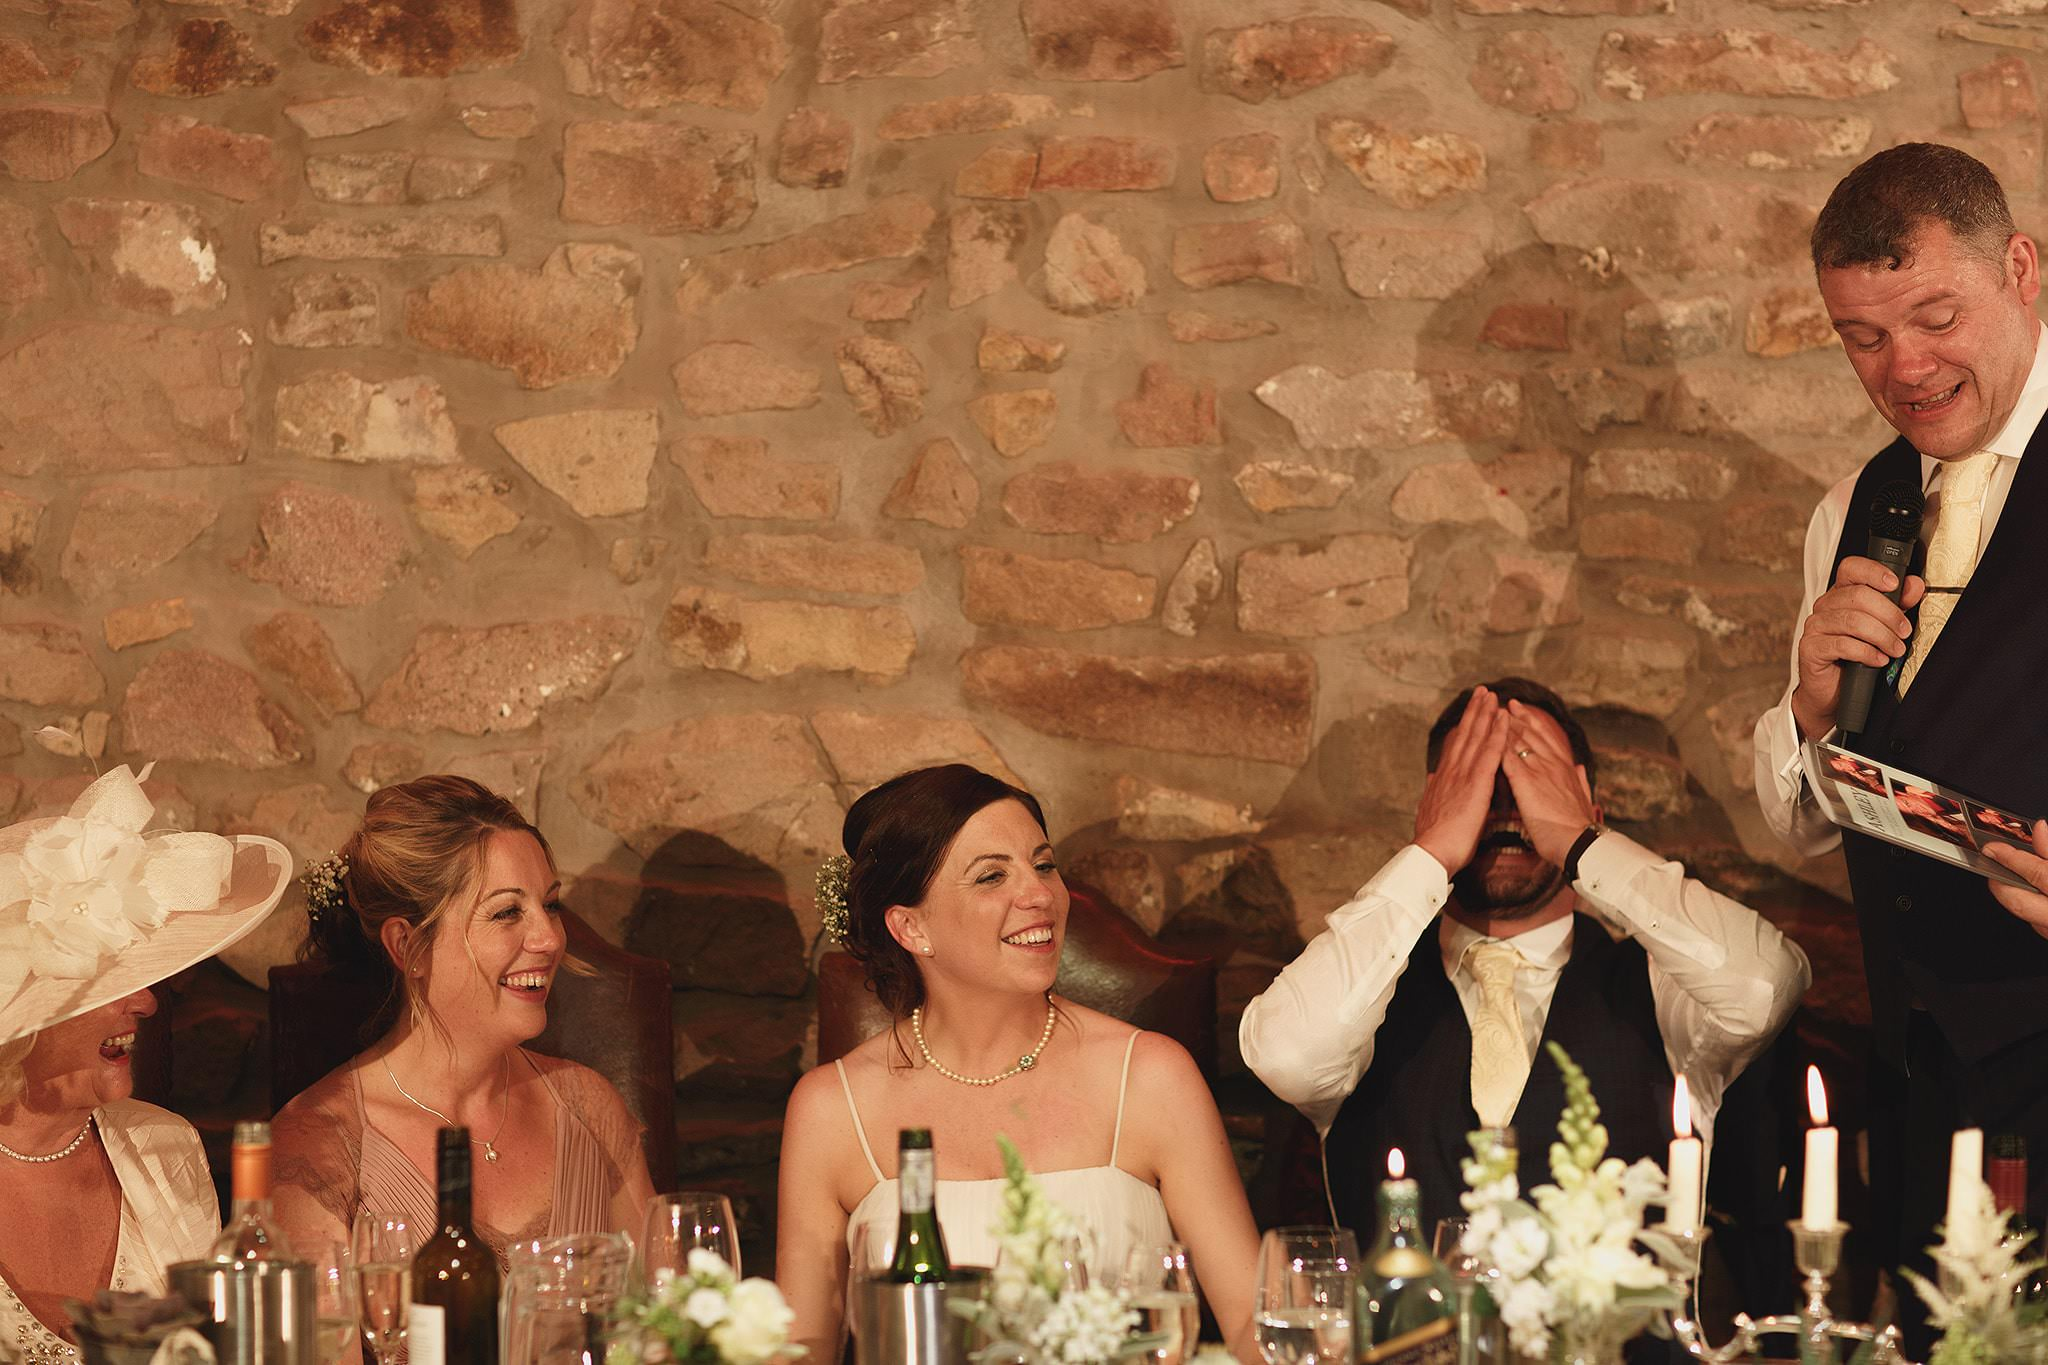 Speeches at Browsholme Hall wedding.